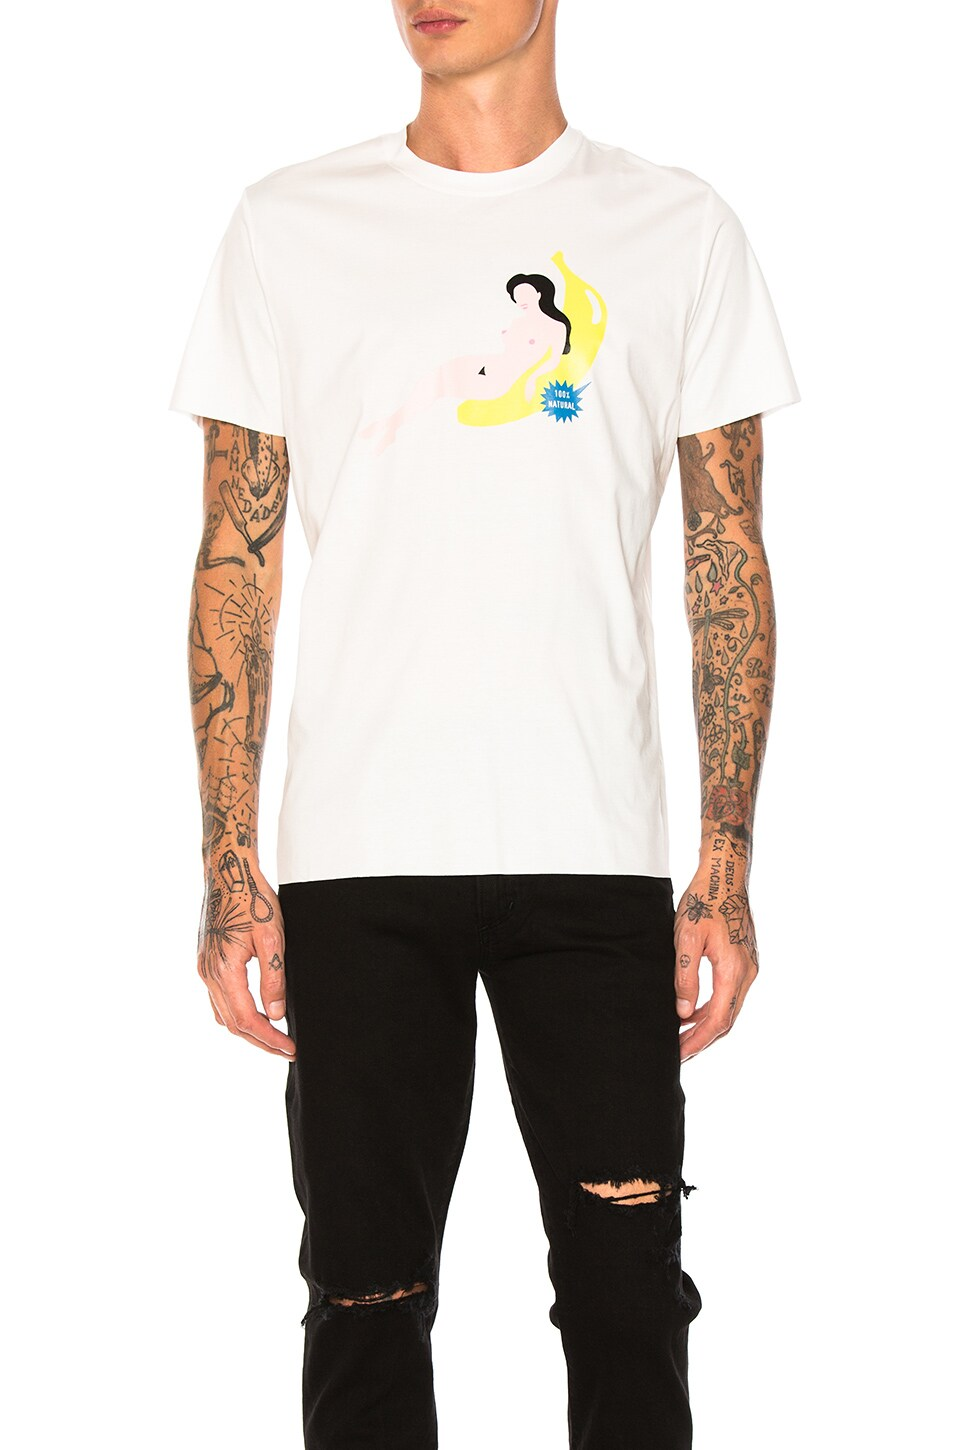 Joe NL Tee by Diesel